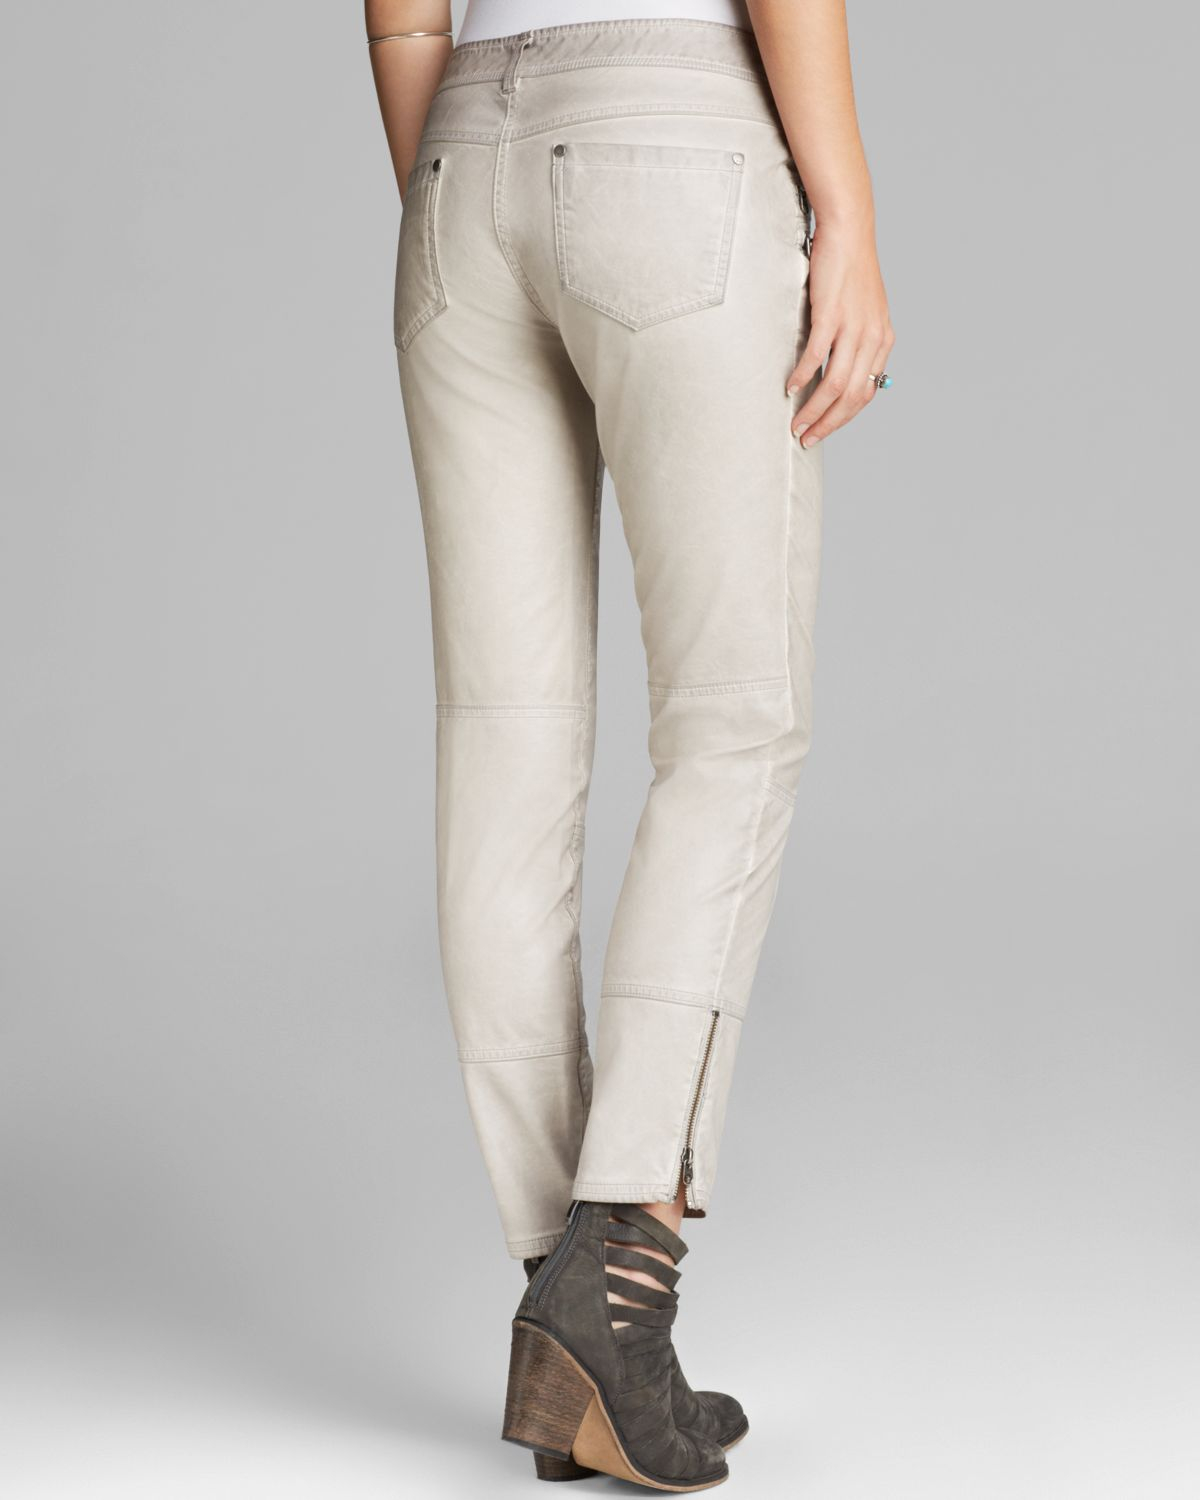 Simple Sexy White Lady Women Skinny Faux Leather Leggings Pants Trouser S